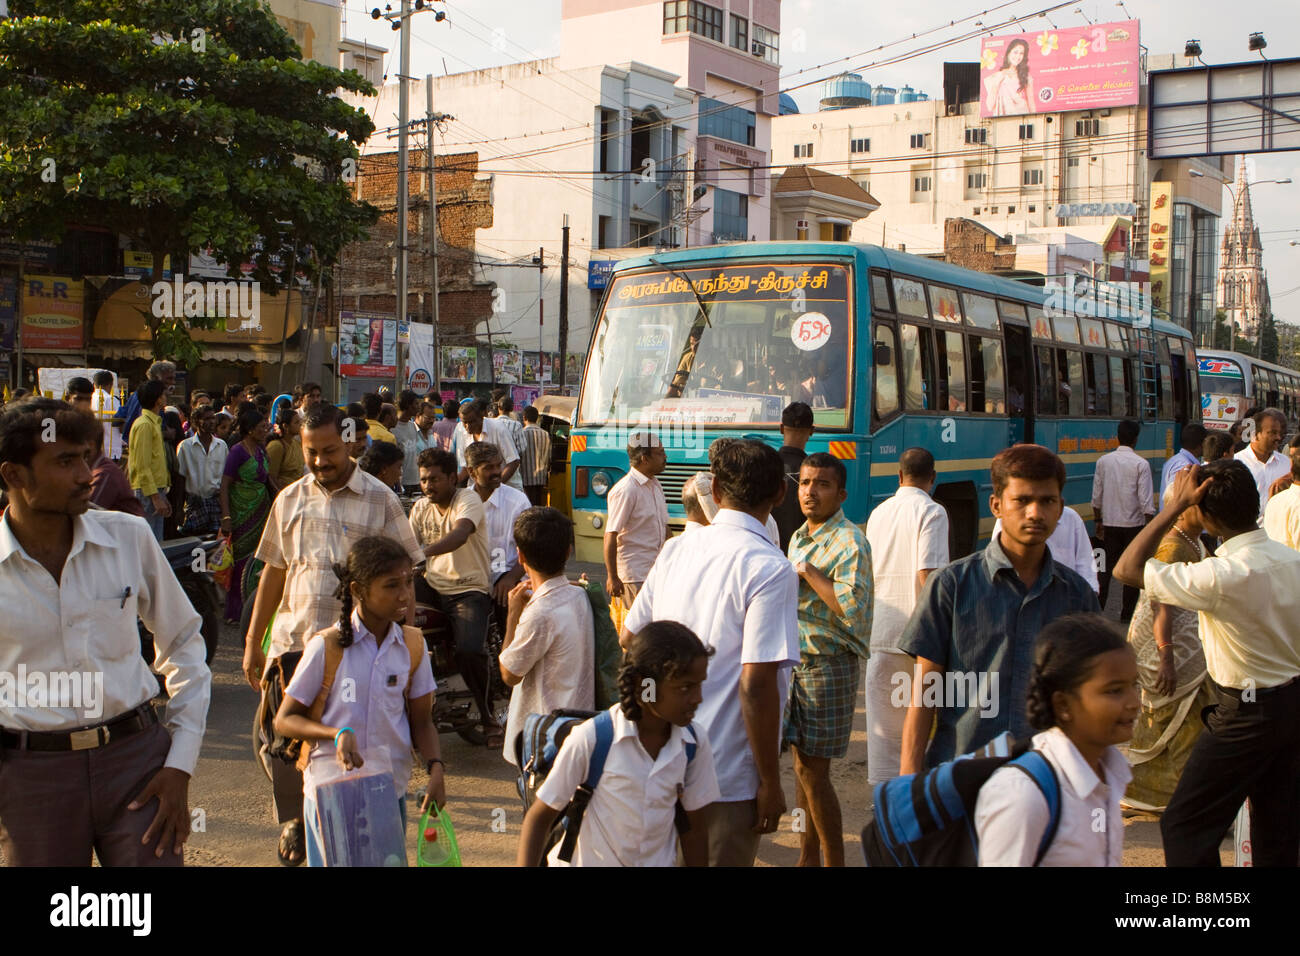 india tamil nadu tiruchirappalli chinnar bazaar many people in street stock photo 22570910 alamy. Black Bedroom Furniture Sets. Home Design Ideas